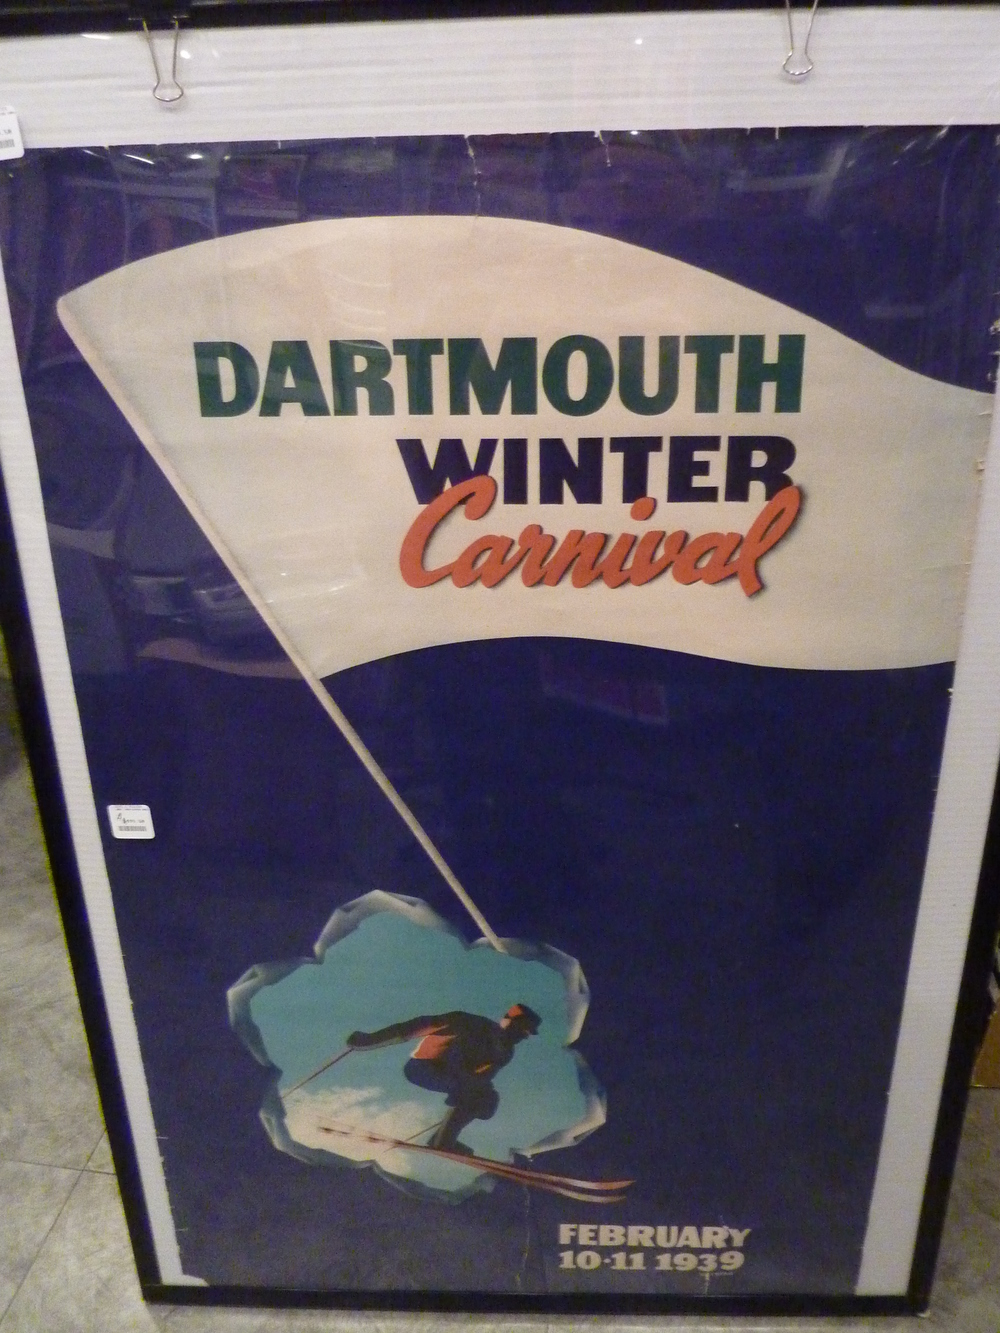 Dartmouth Winter Carnival 1939 (blue)